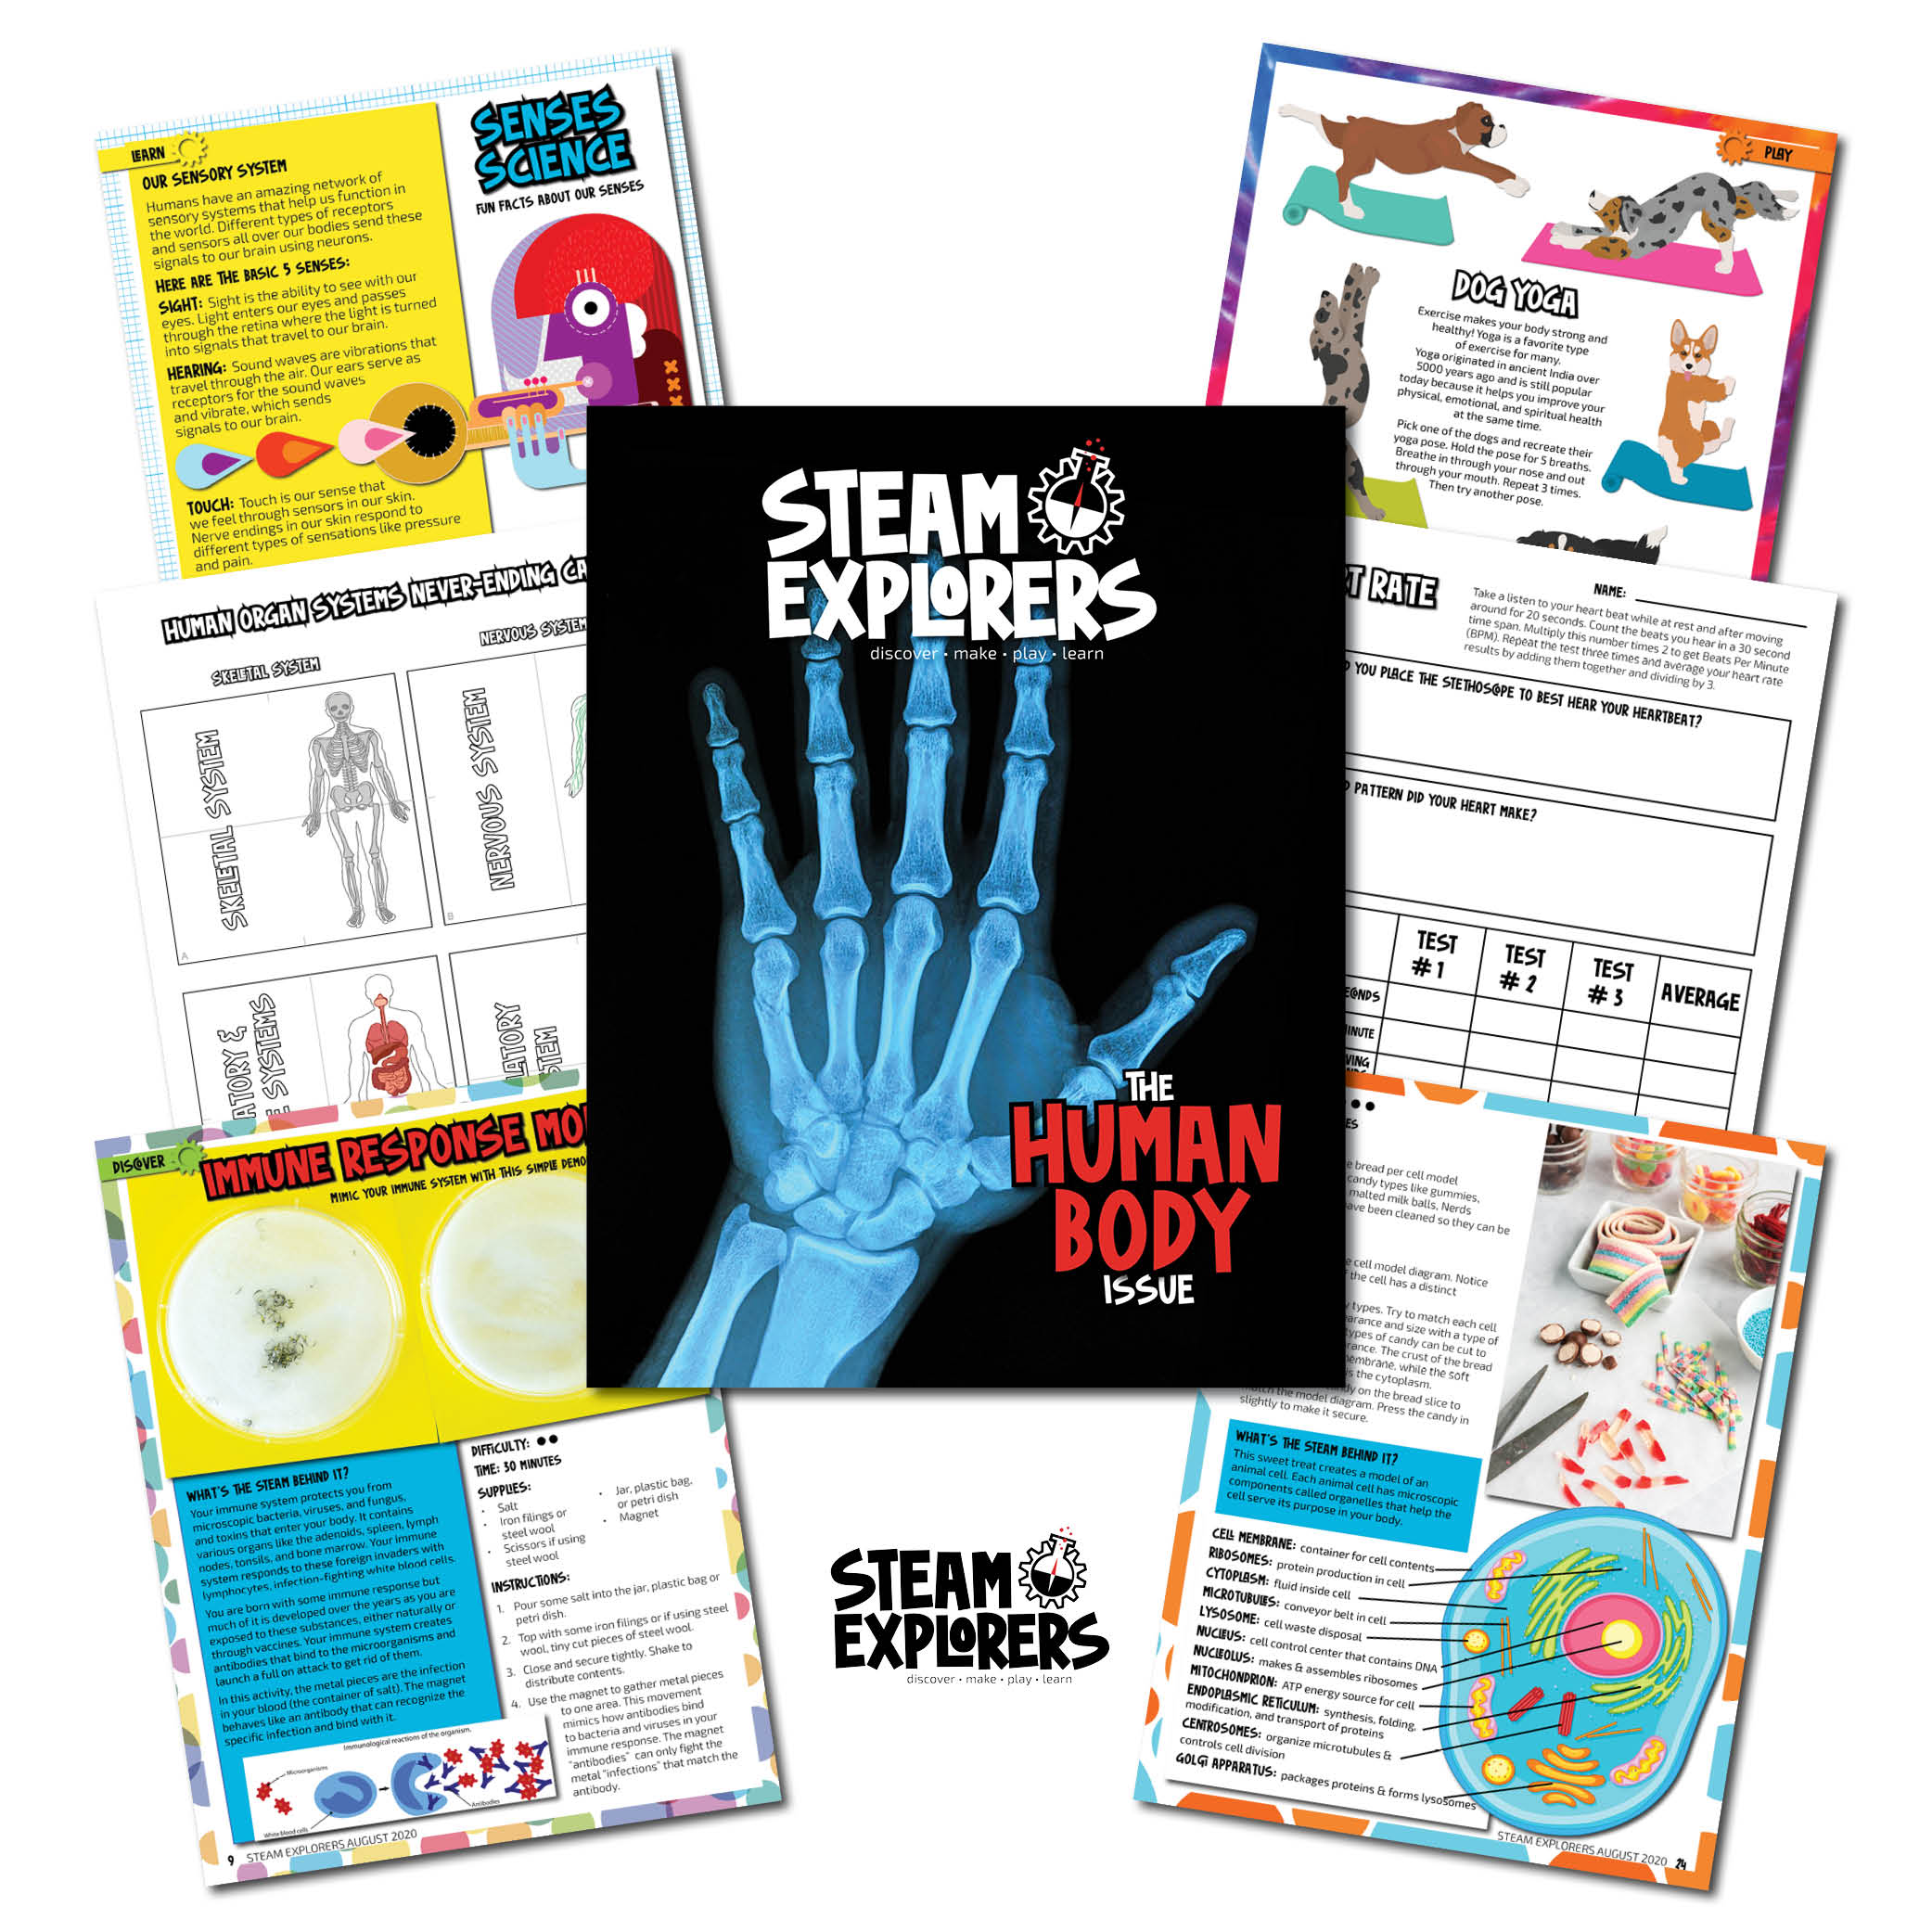 STEAM Explorers - Human Body - Cover Collage